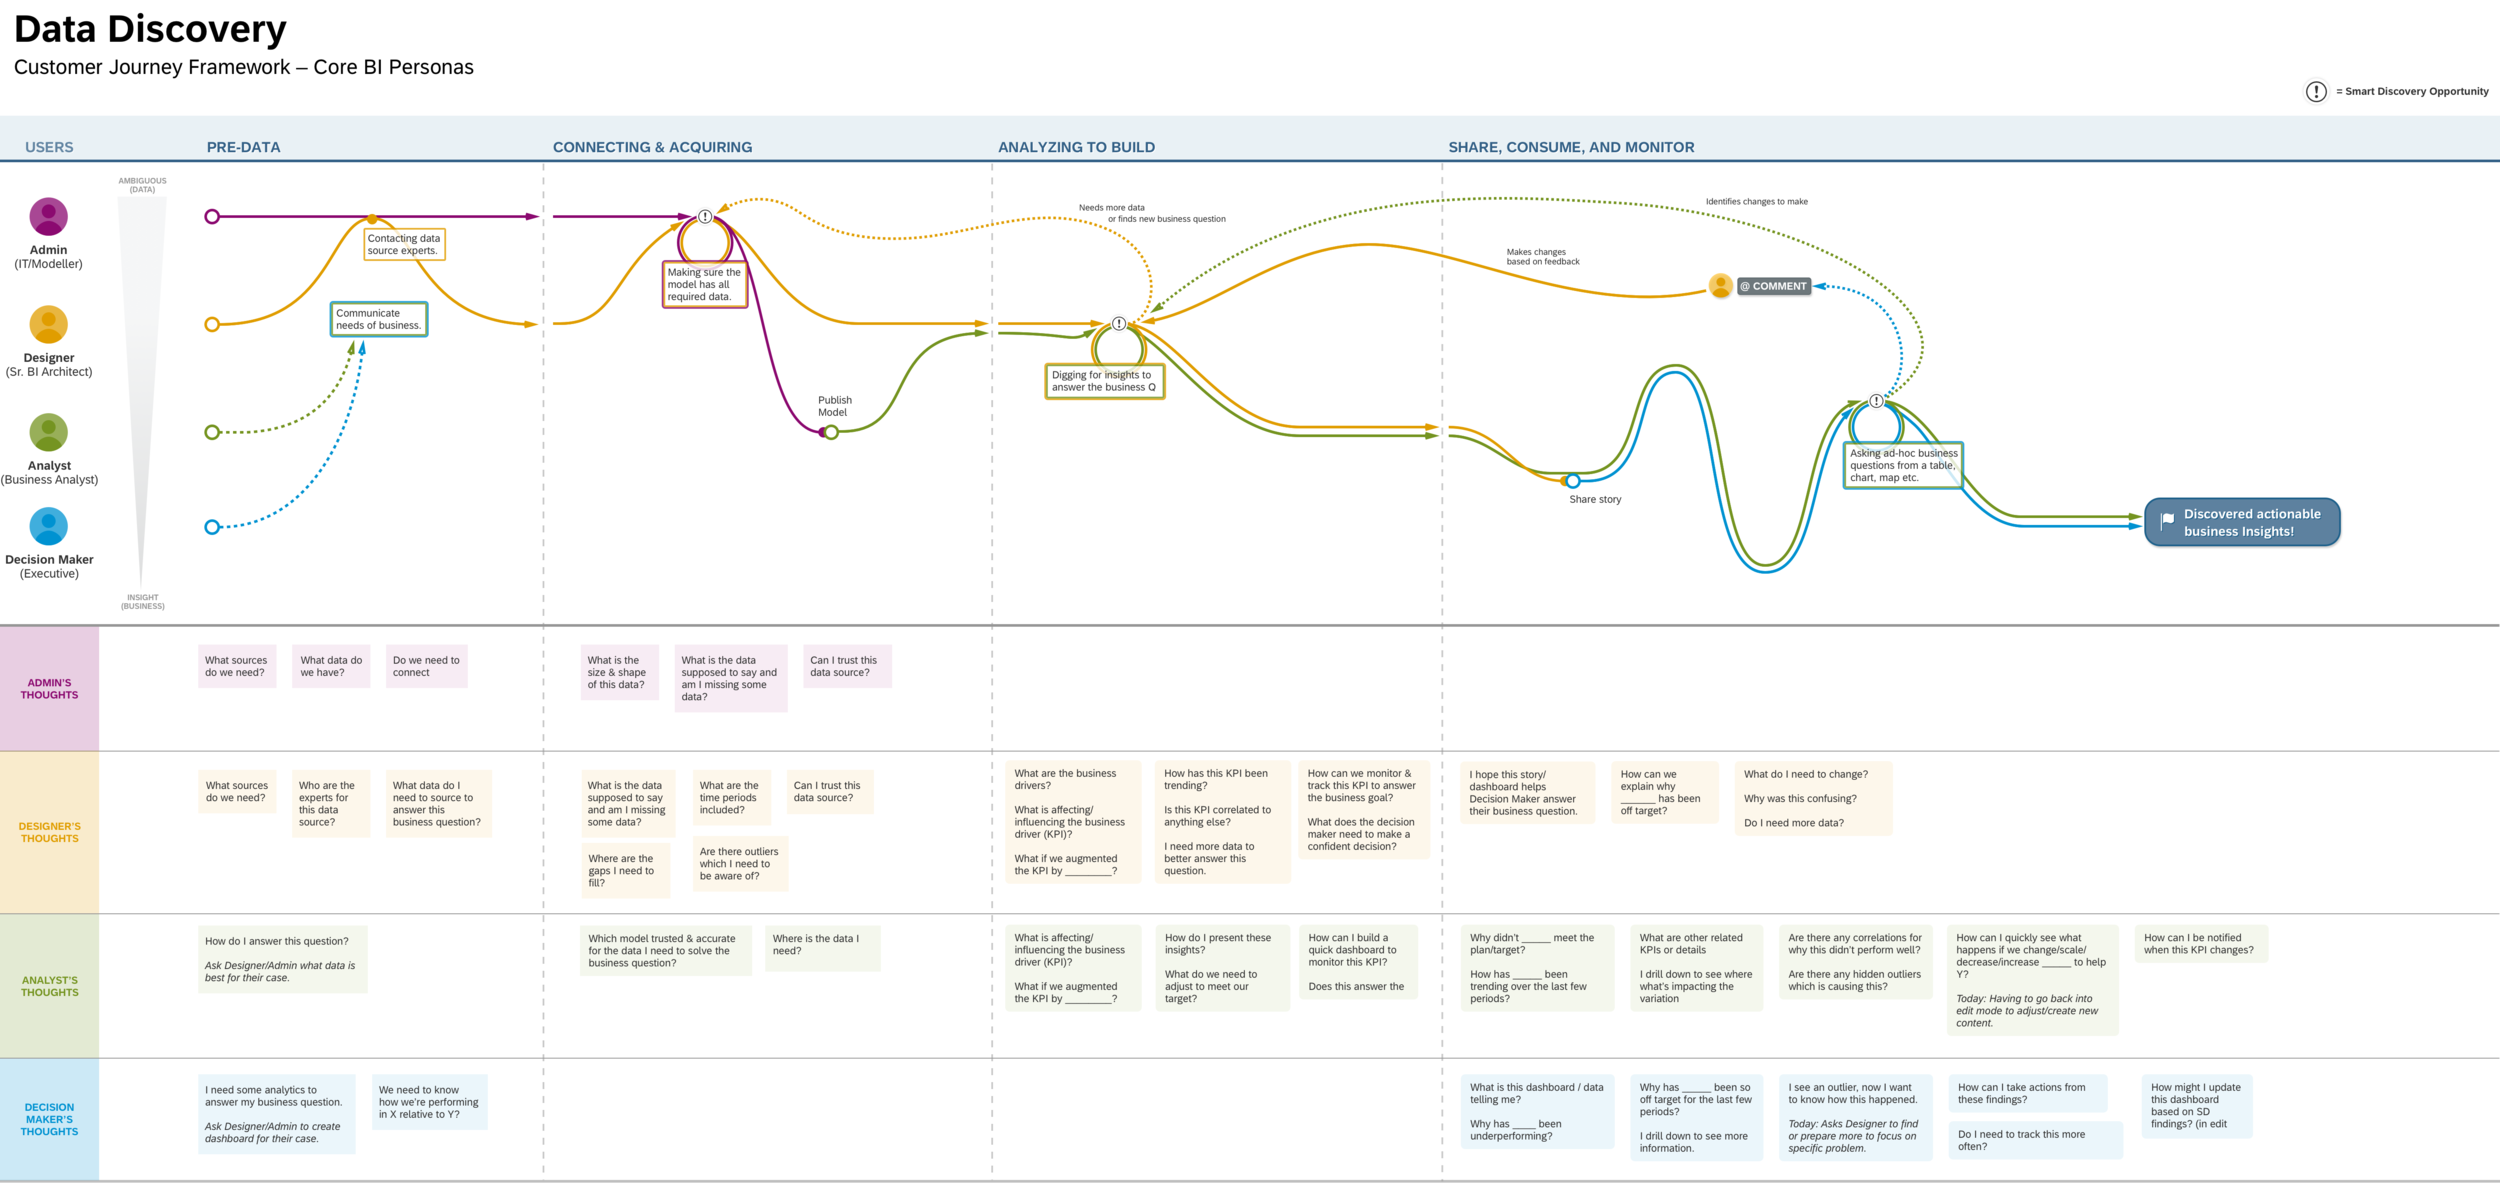 Customer Journey Framework: Mapping the data discovery workflow, touchpoints between BI personas & their thoughts to find Smart Discovery intervention opportunities.